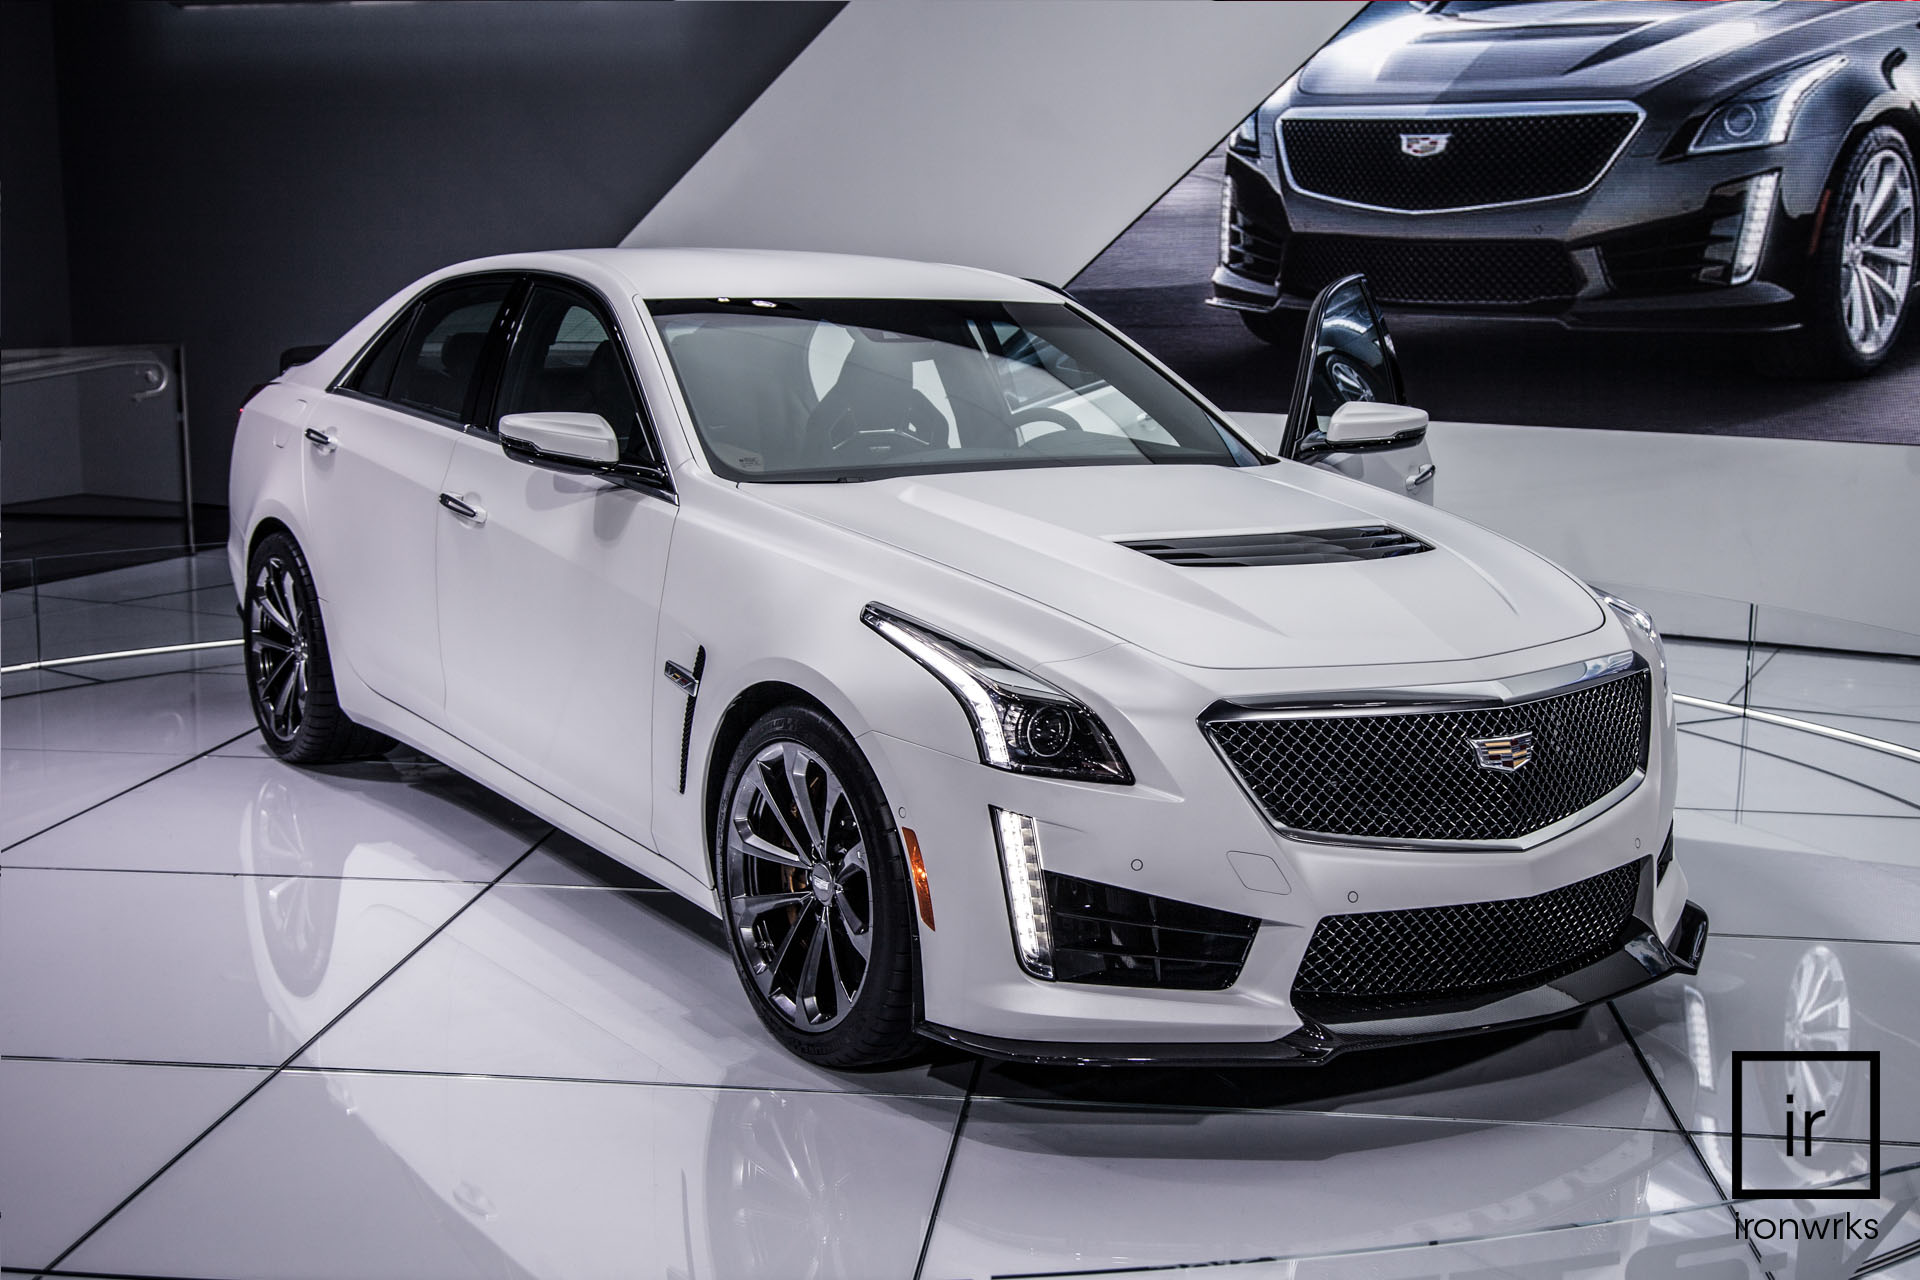 cadillac cts 2008 2016 wallpaper